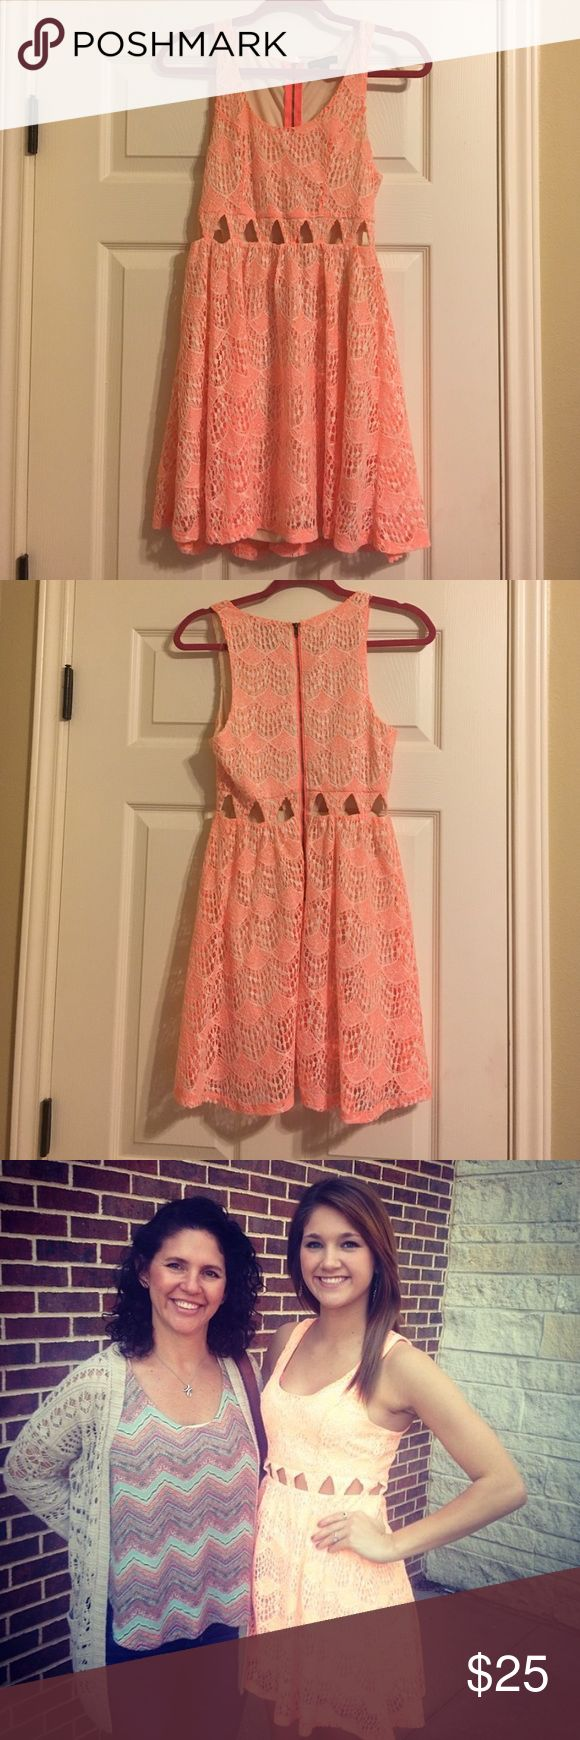 Bright orange dress Worn once! Adorable bright orange lace dress with cut out detailing. Material Girl Dresses Midi